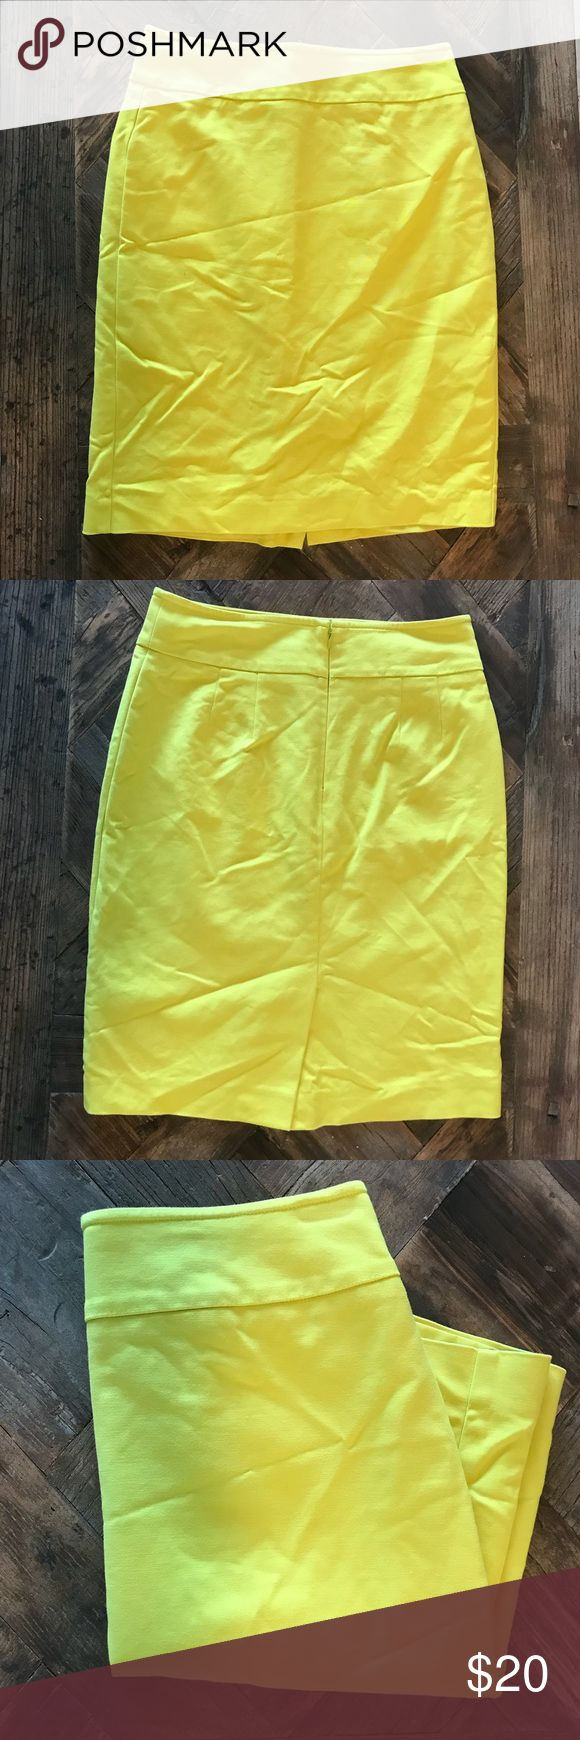 Chartreuse pencil skirt Pencil skirt from Ann Taylor in a fun, super bright chartreuse color, fully lined.  Pre loved but in good condition.    Looks great paired with a neutral blouse, or with a graphic tee and statement necklace for a fun business casual work outfit.     The wrinkles are from being folded, but will be steamed out before shipping! Ann Taylor Skirts Pencil